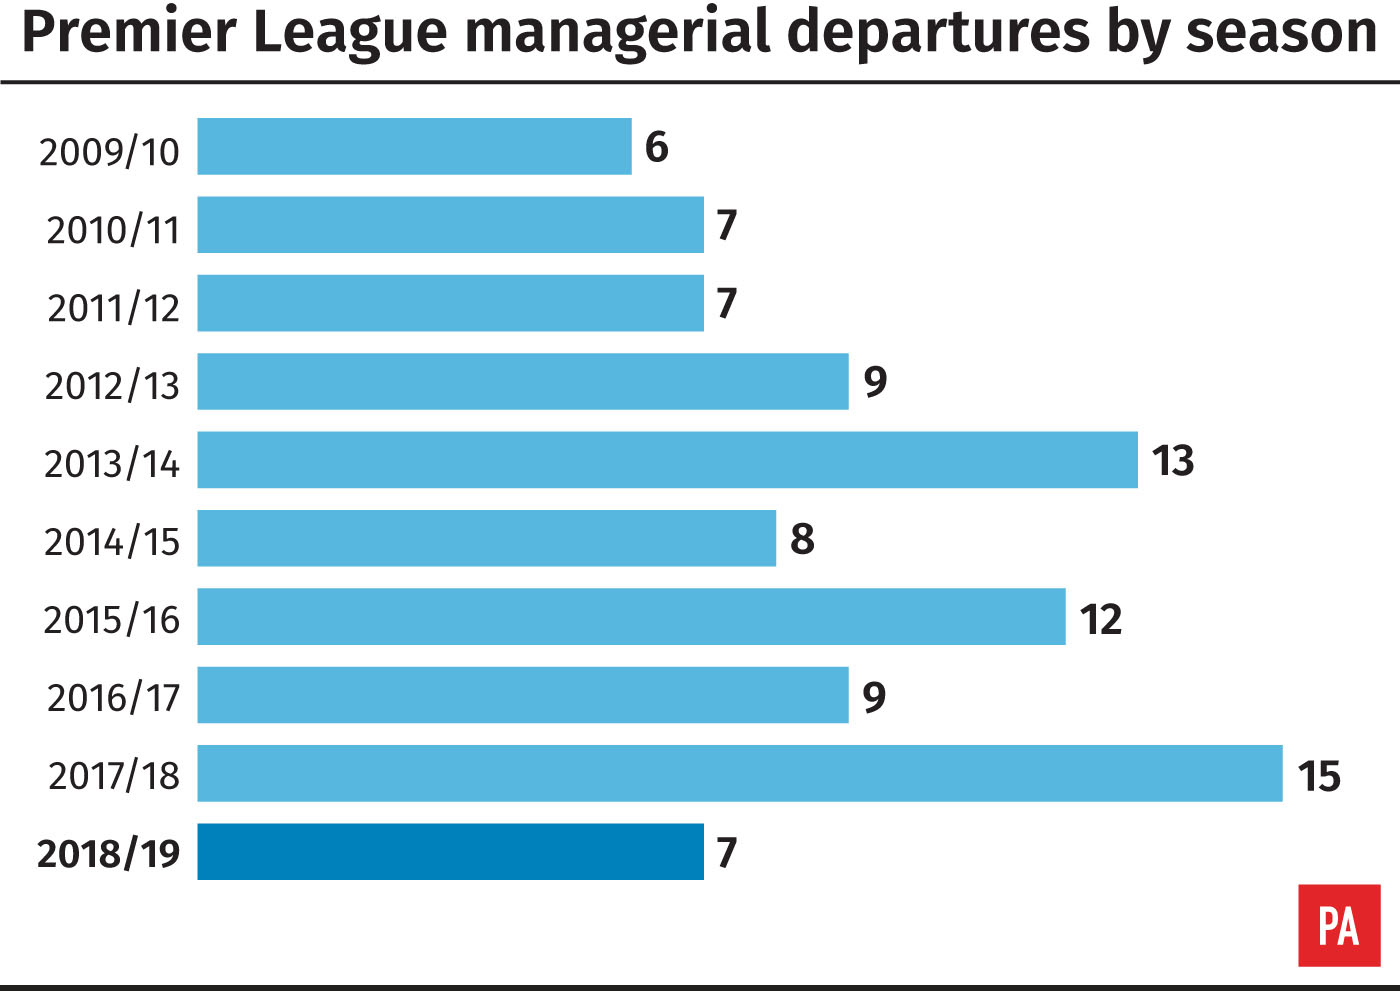 Premier League managerial departures by season